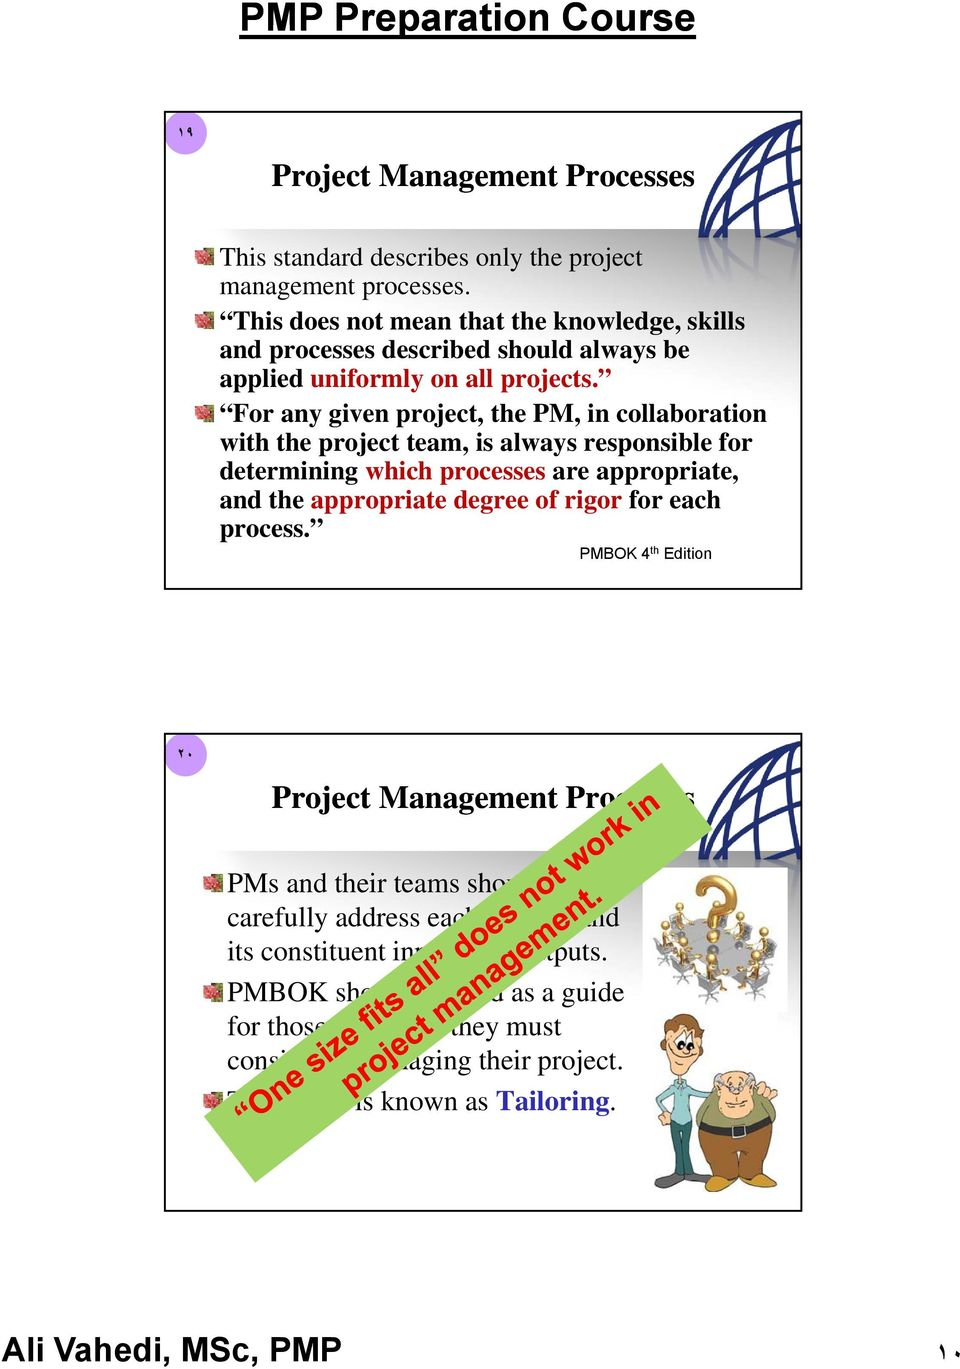 For any given project, the PM, in collaboration with the project team, is always responsible for determining which processes are appropriate, and the appropriate degree of rigor for